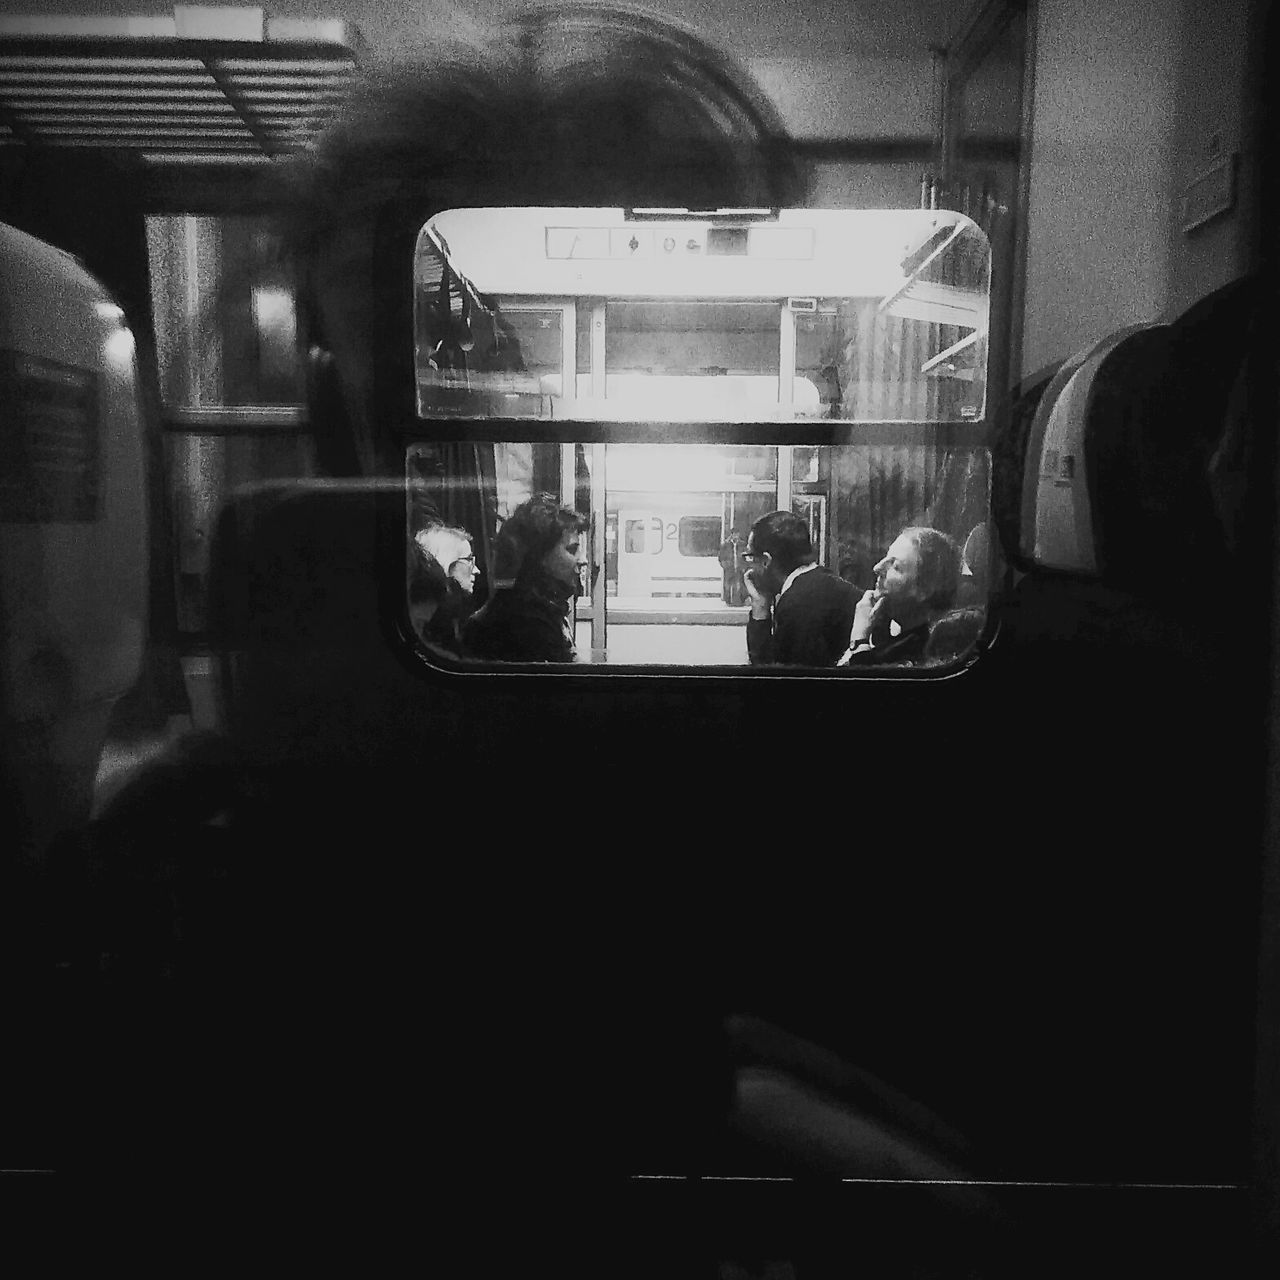 Transportation Real People Mode Of Transport Public Transportation Men Land Vehicle Journey Passenger People Close-up Day Alone Loneliness Separation Window View Isolation Train Train Station Traveling Reflection Black And White Black And White Photography Black And White Collection